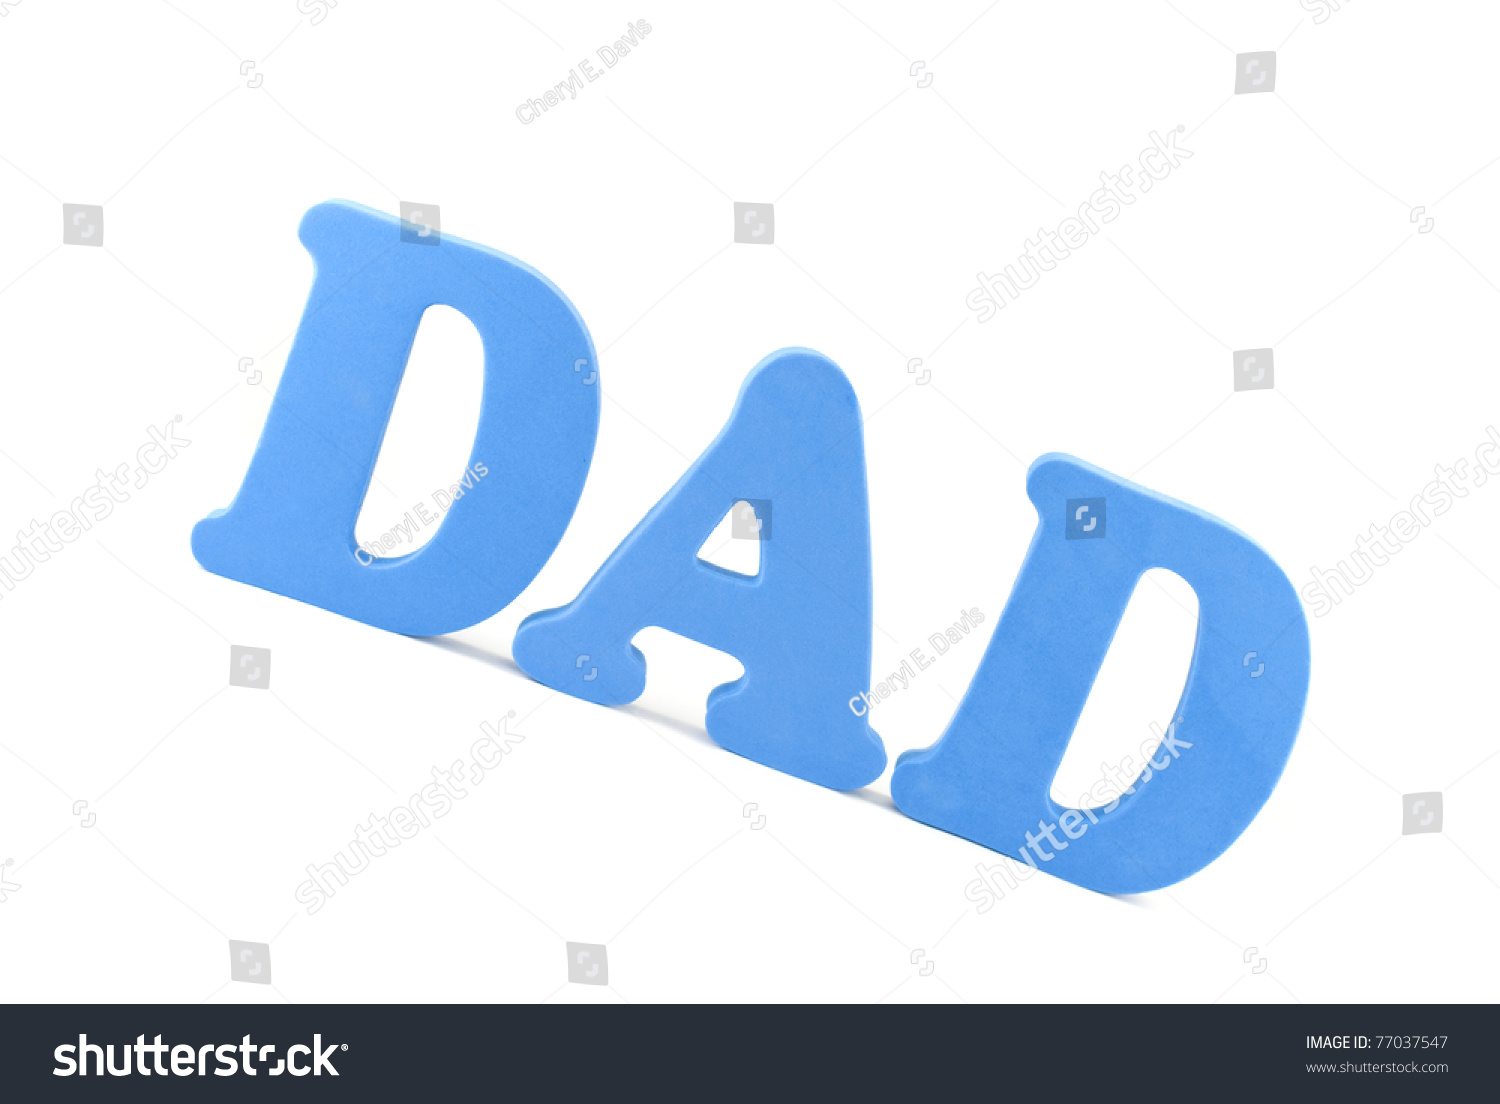 the word dad in 3d blue block letters with shadow isolated on white background